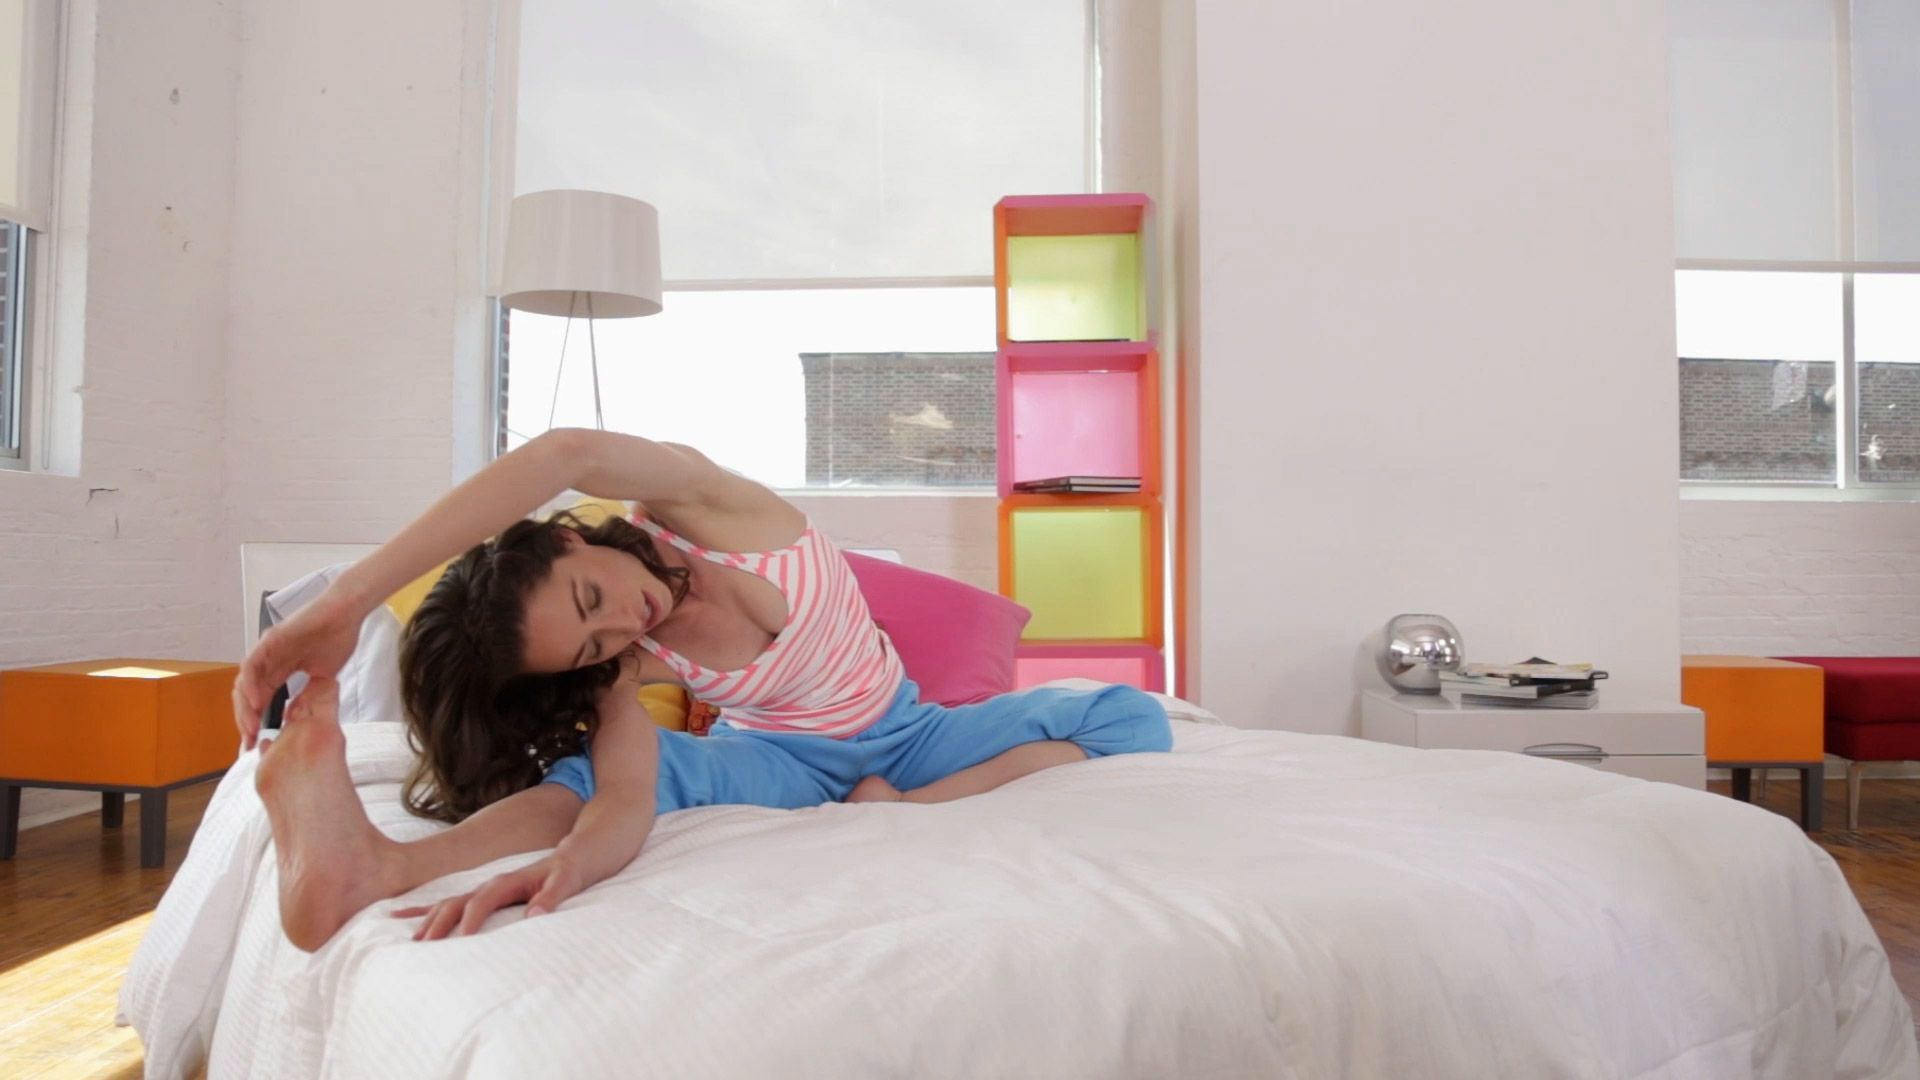 6 Stretches Everyone Should Do Before Getting Out of Bed